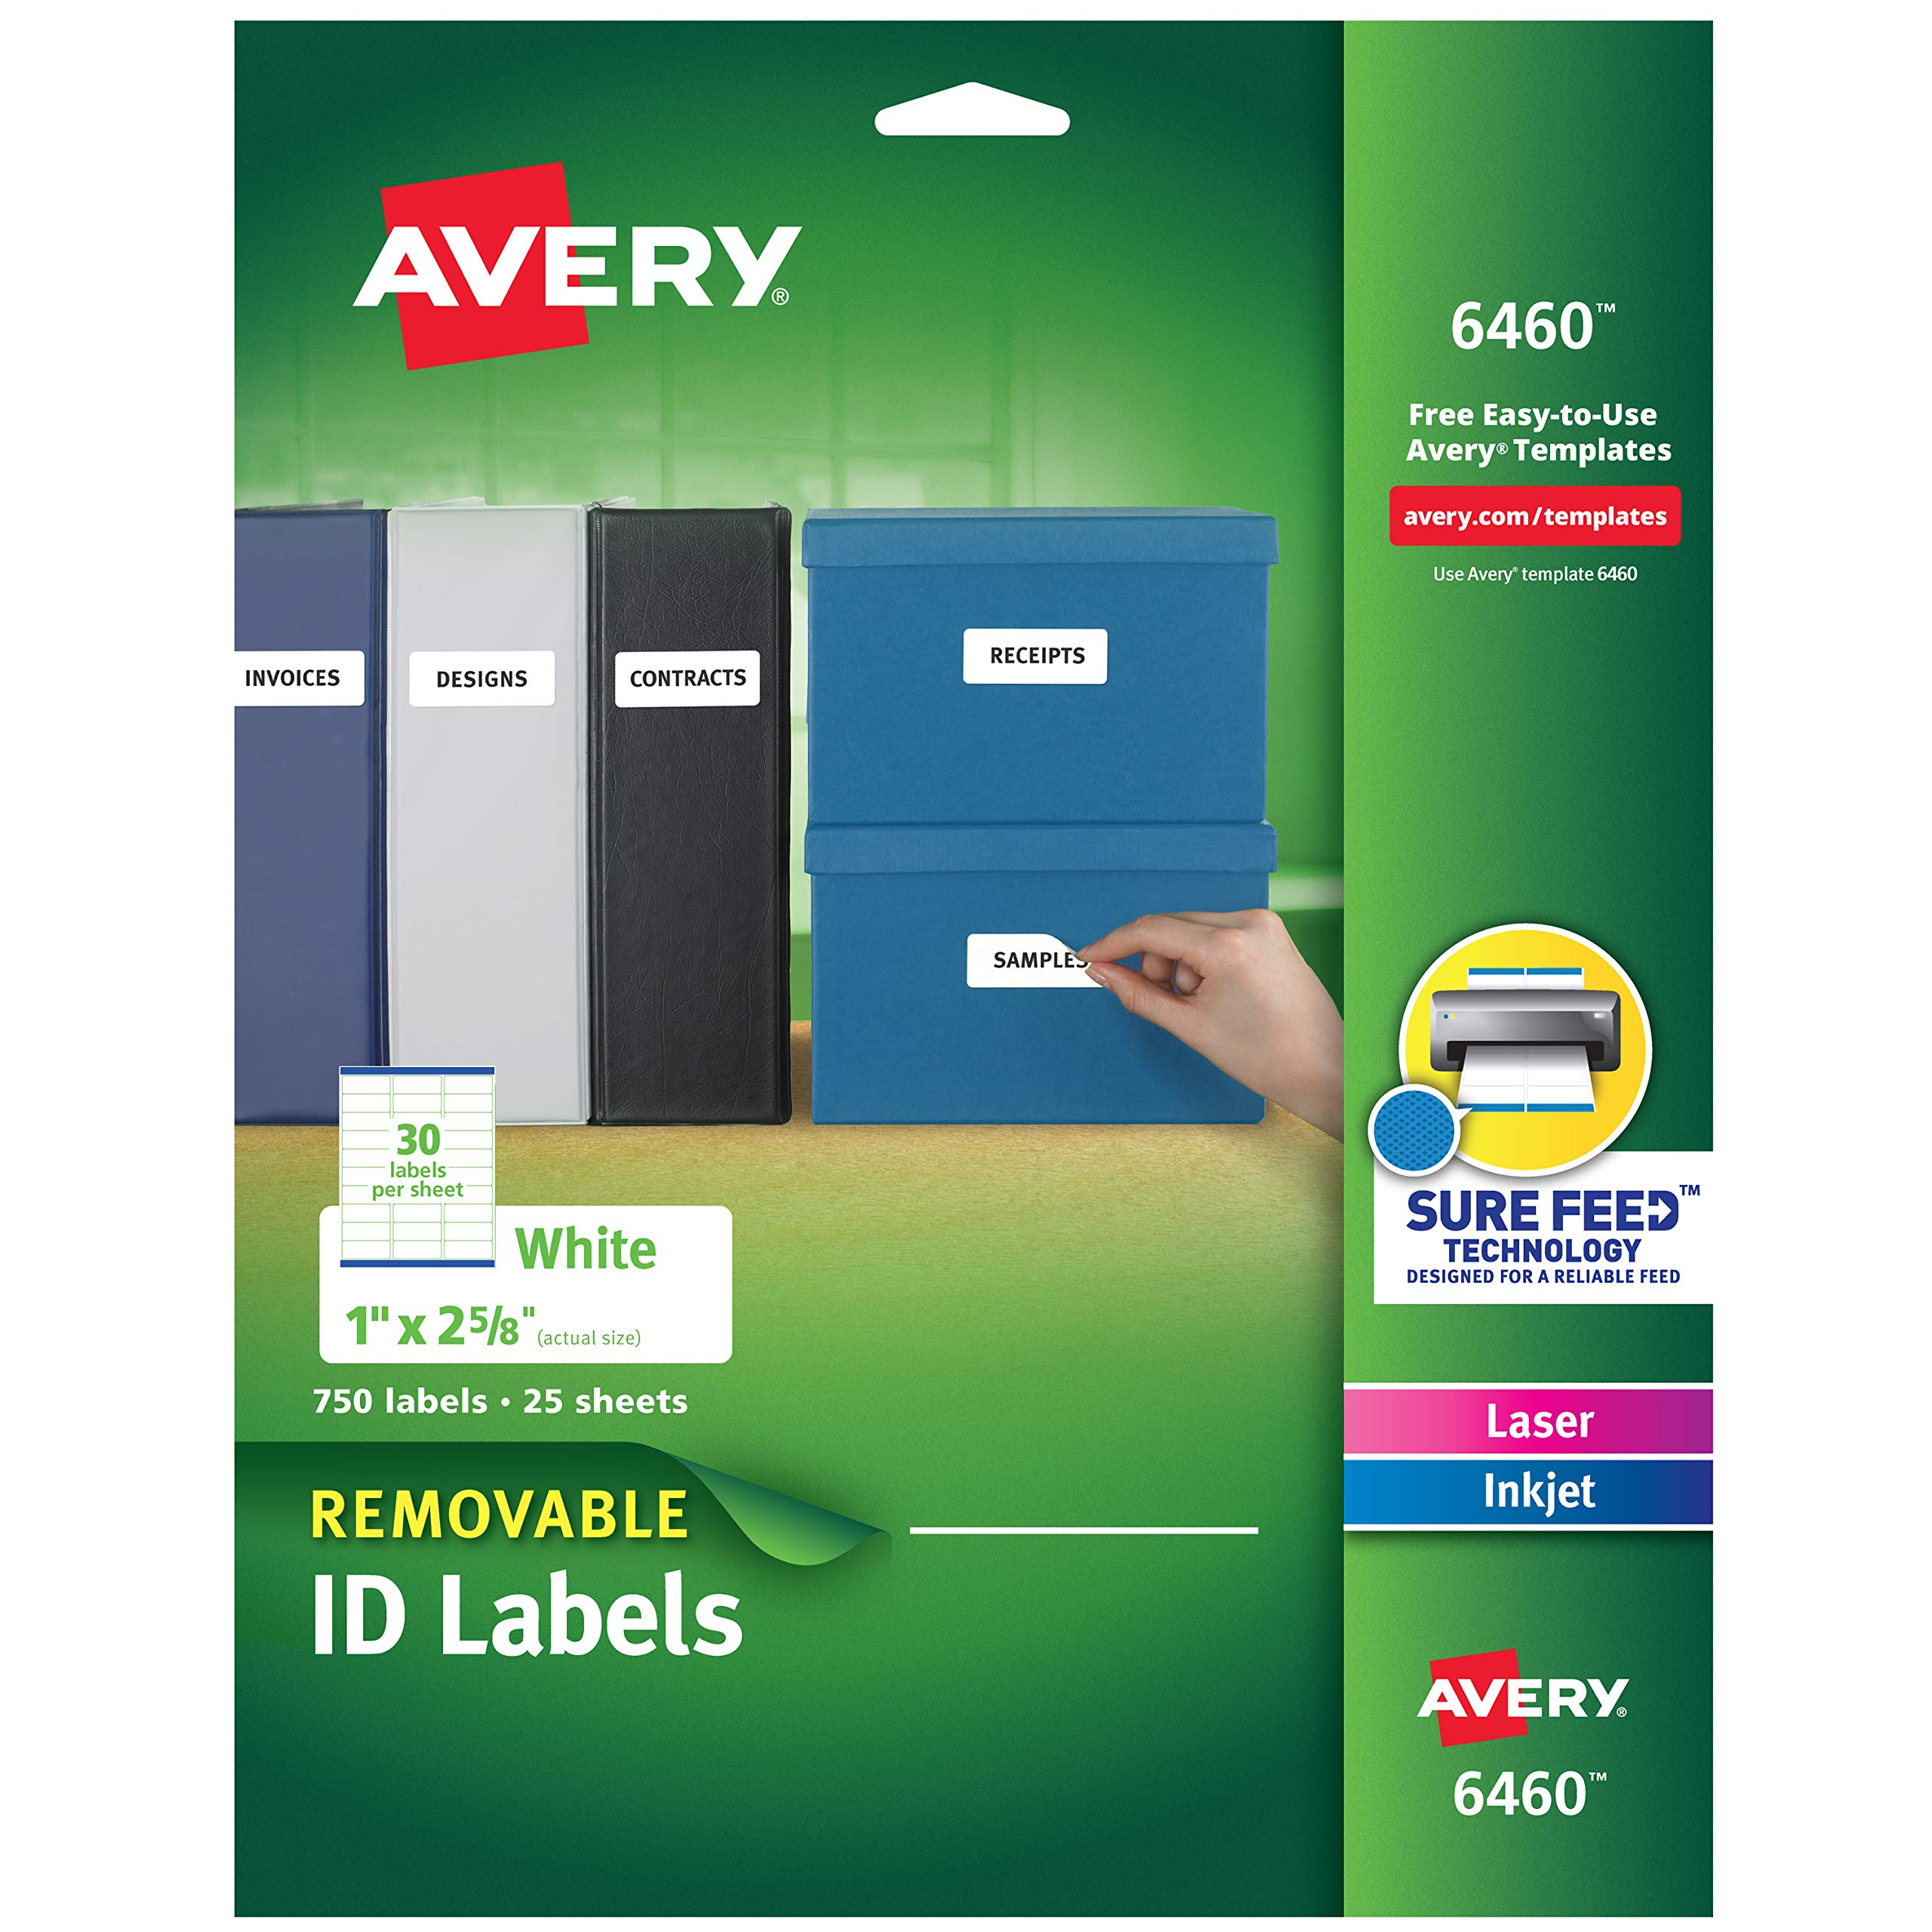 Avery Removable 1 x 2 5/8 Inch White ID Labels 750 Count (6460) by AVERY